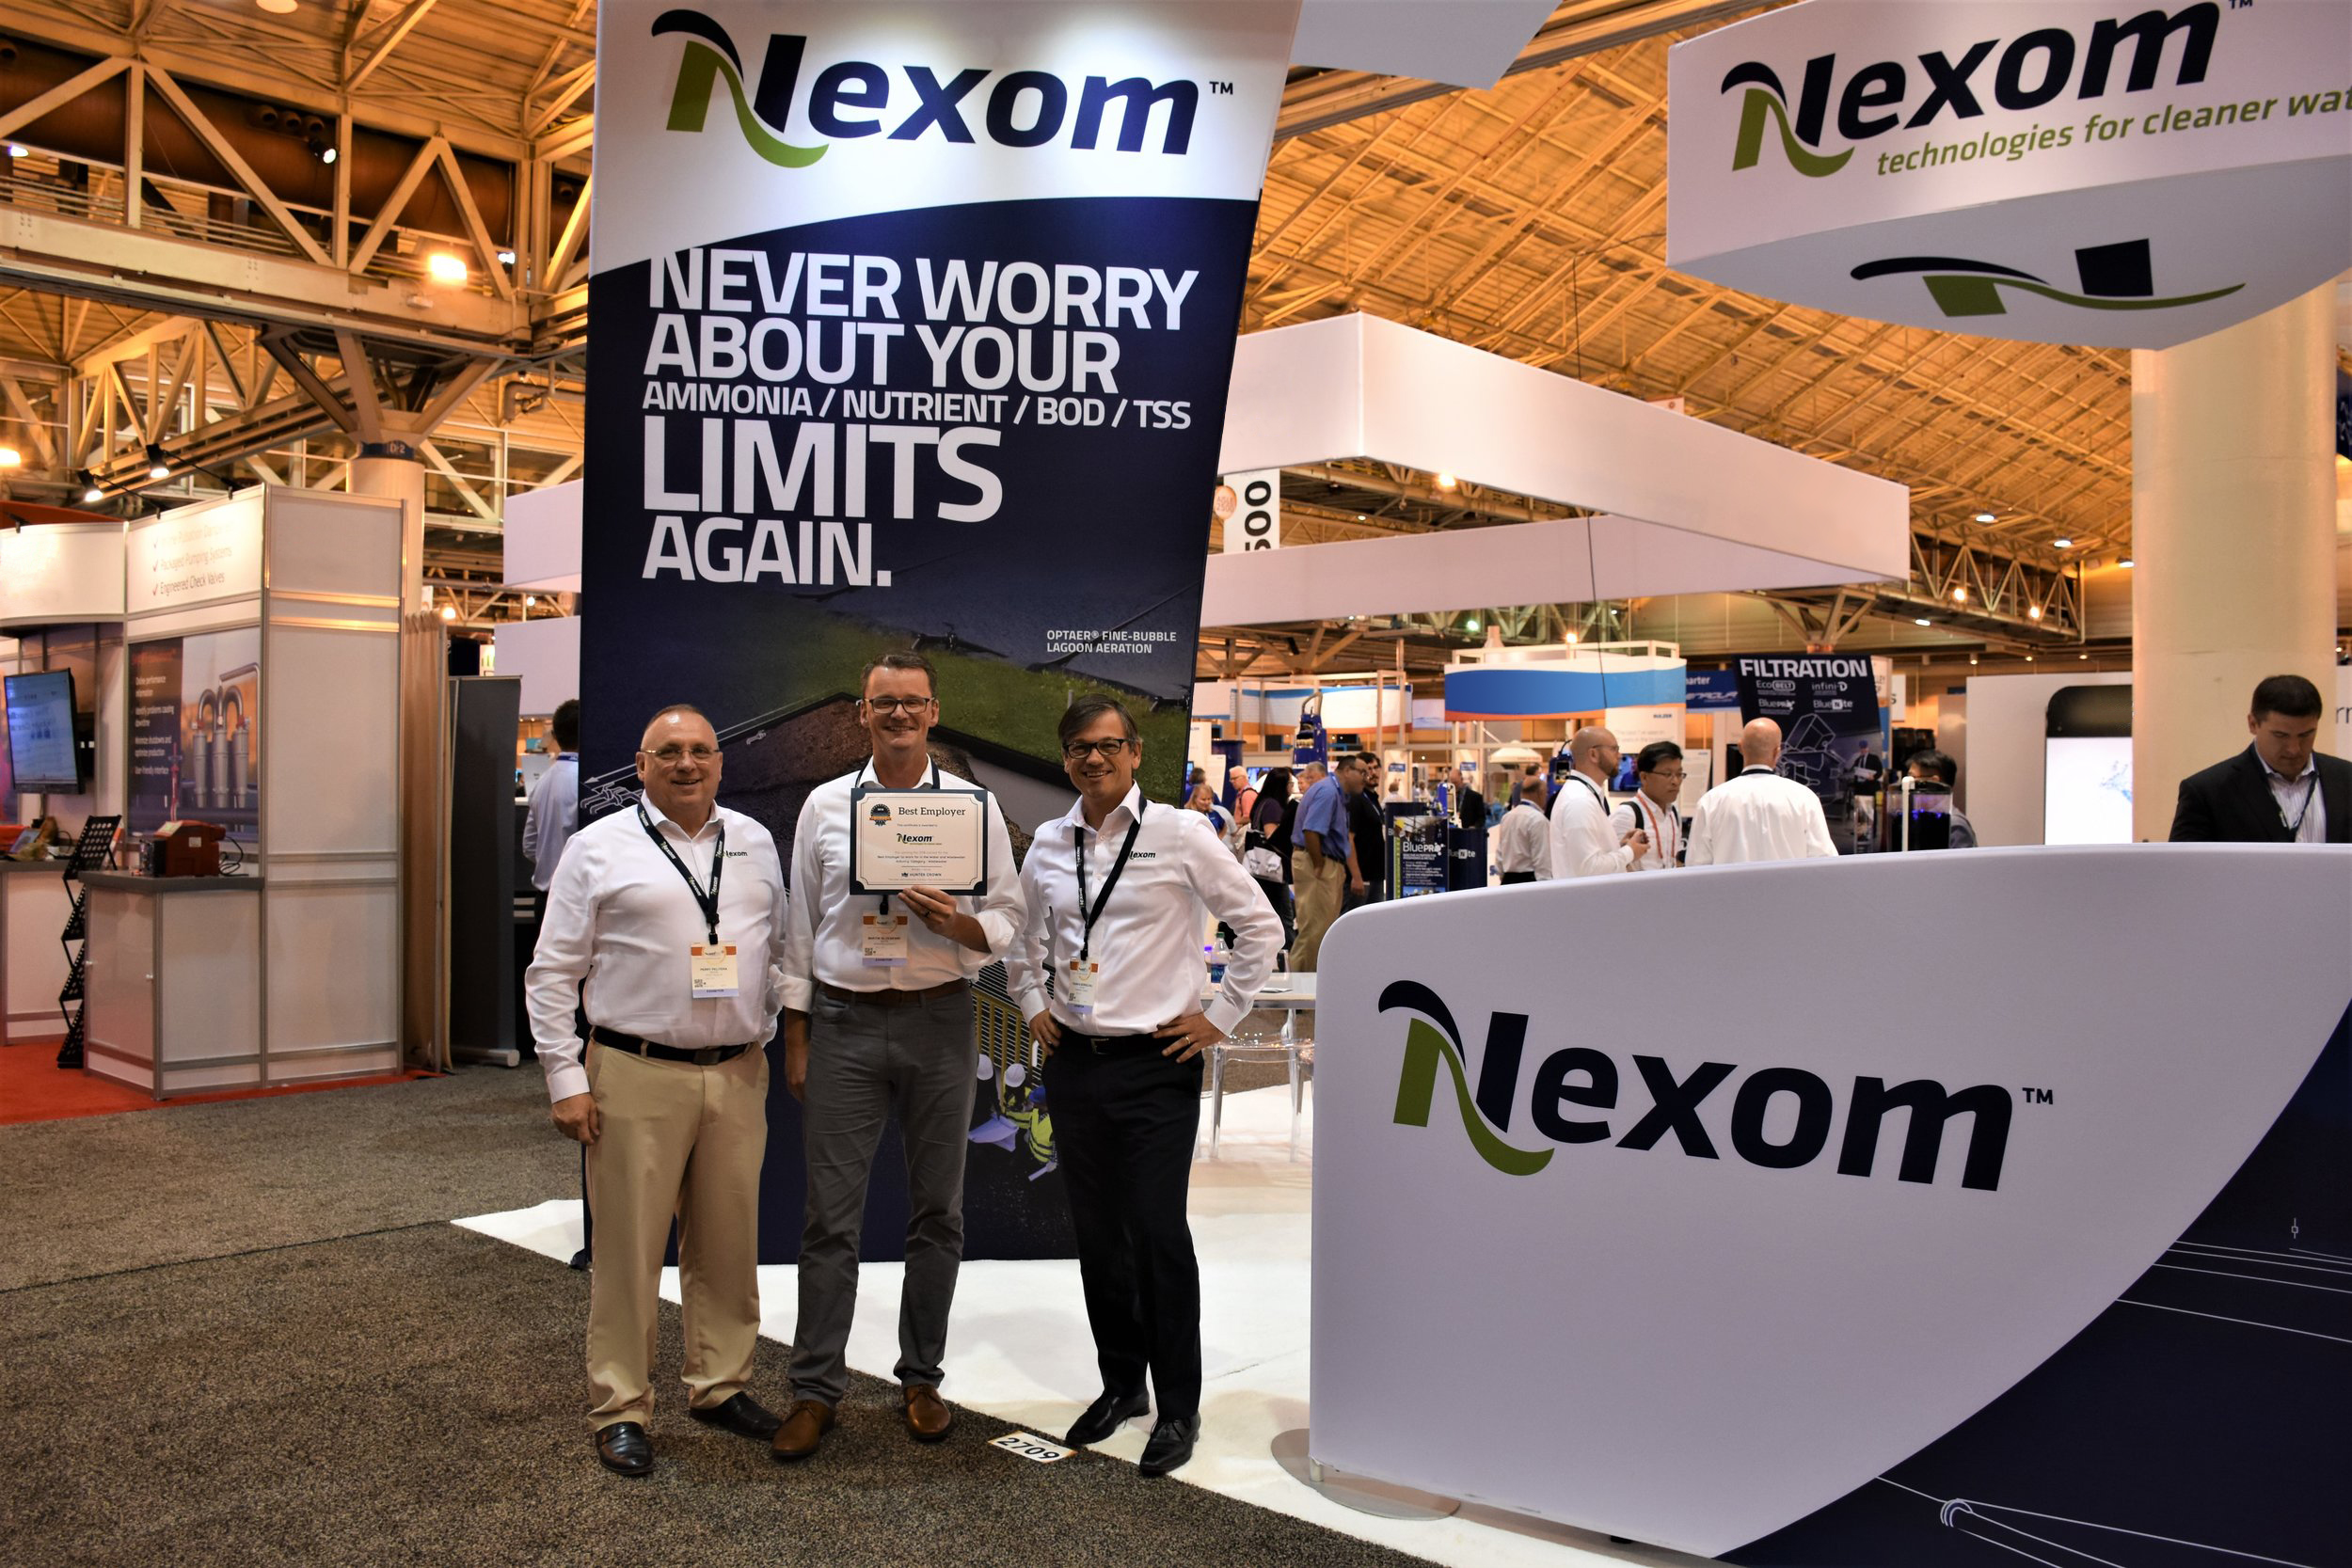 Perry Pelitera (Regional Sales Manager), Martin Hildebrand (President), and Francis Bordeleau (Vice President, Sales & Marketing) accept the 2018 Best Employer Award presented by Hunter Crown at WEFTEC 2018 in New Orleans.